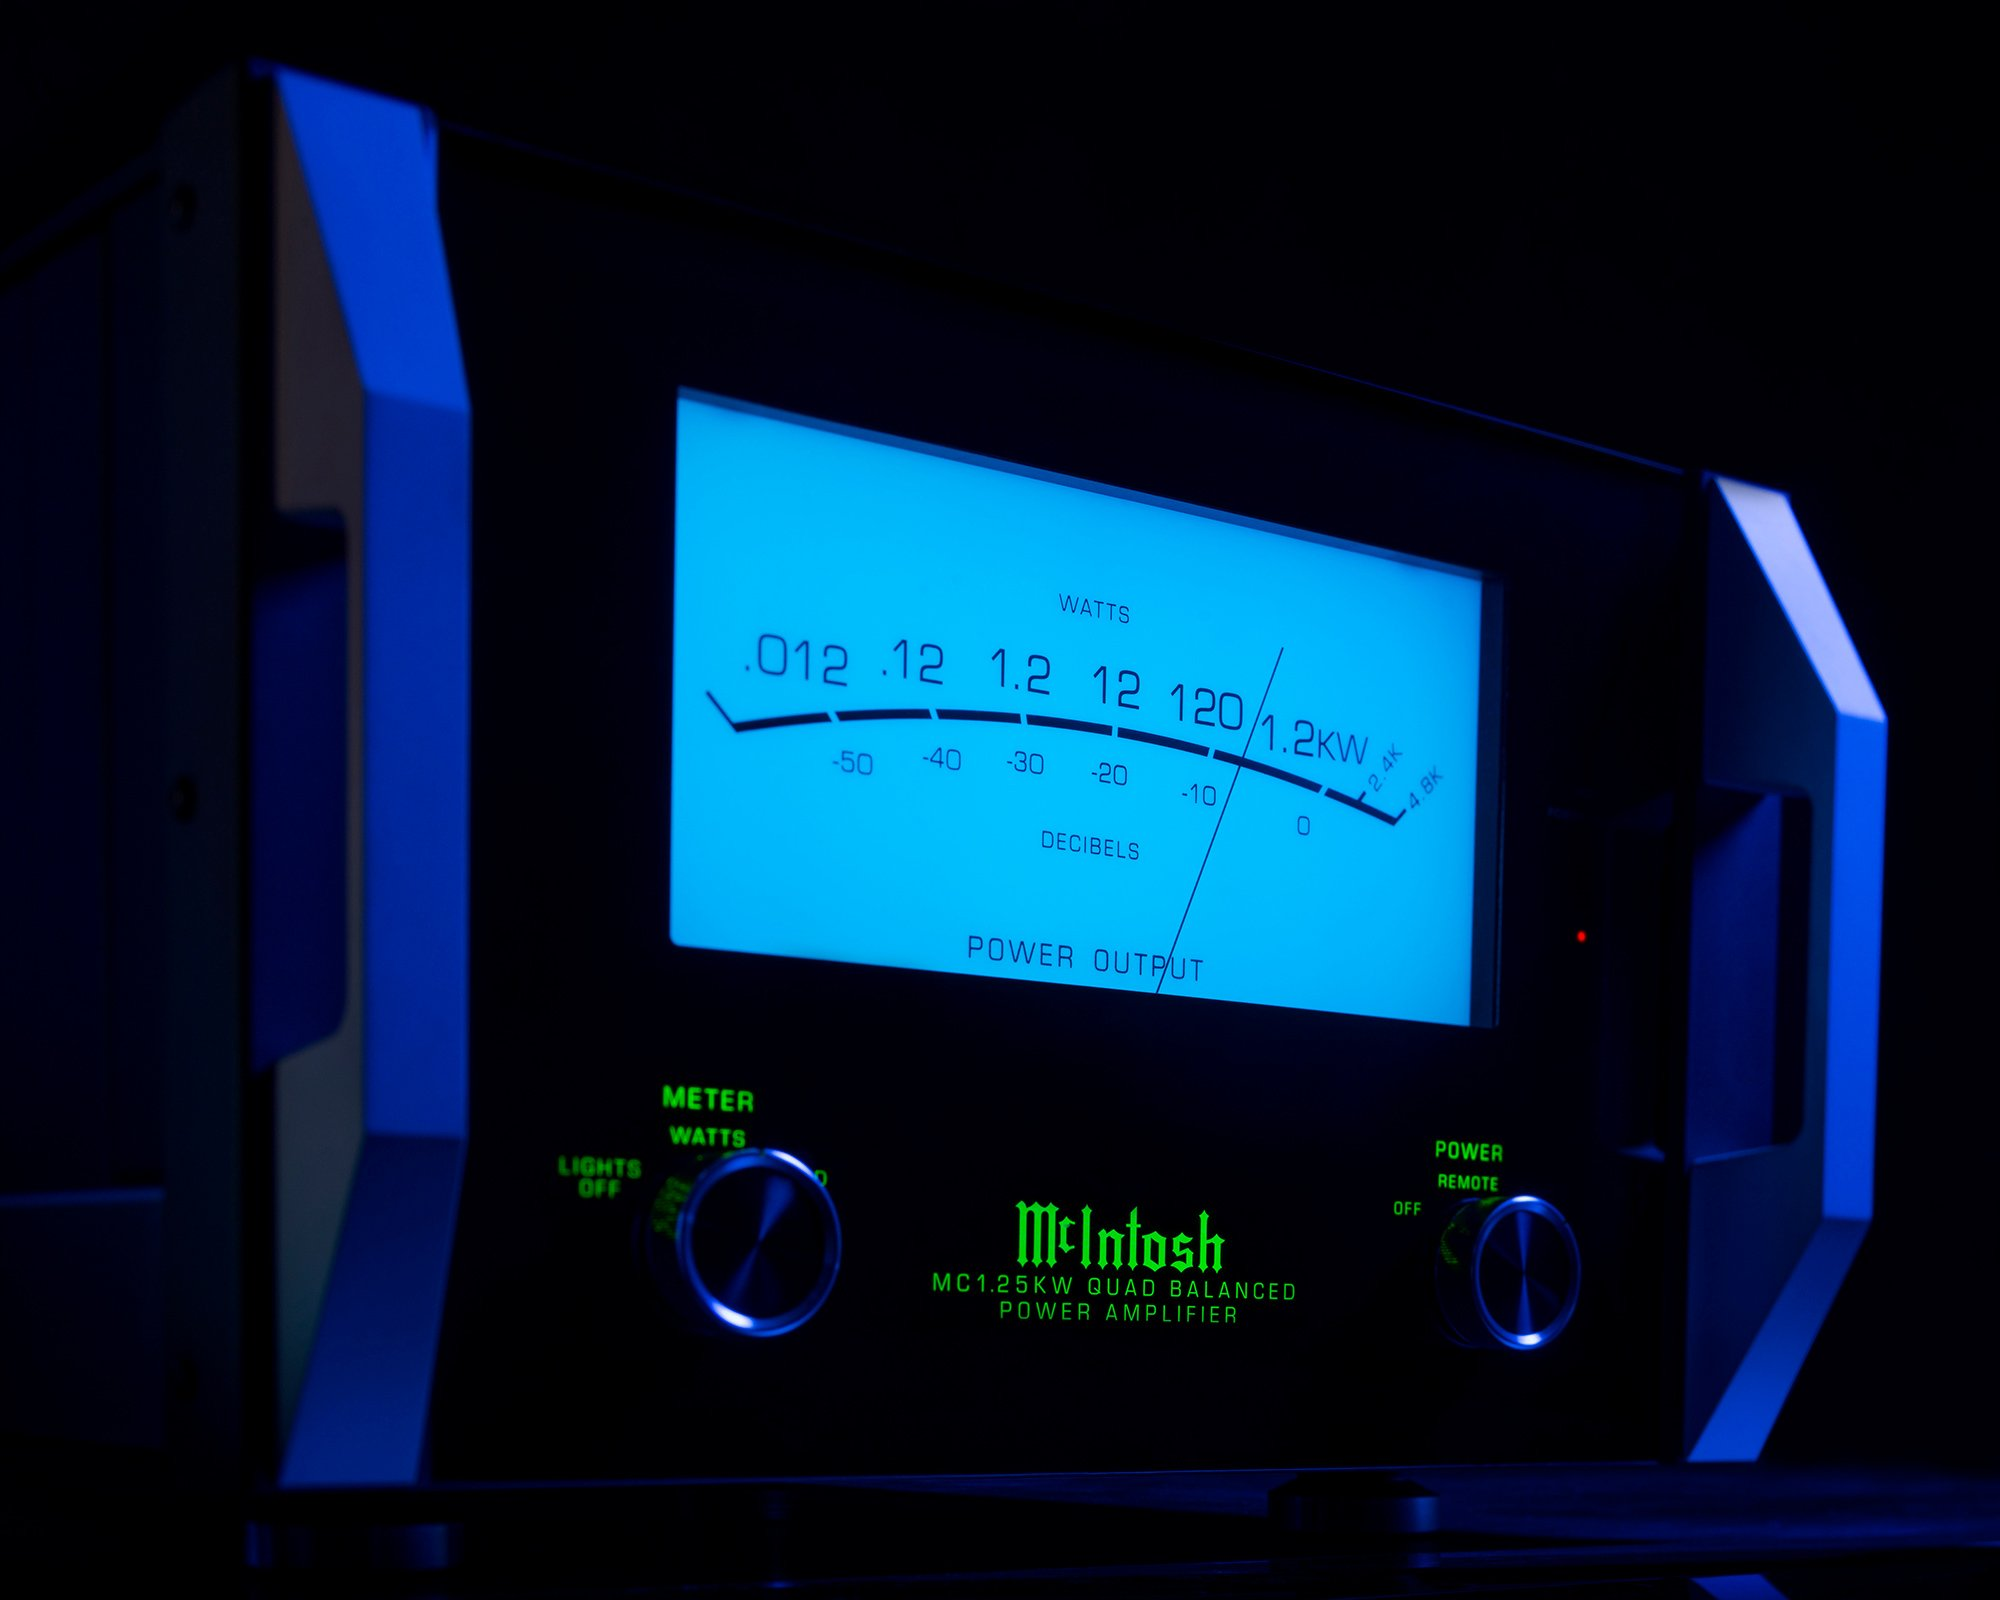 McIntosh Home Audio Equipment for Stereo Home Theater Systems 2000x1600